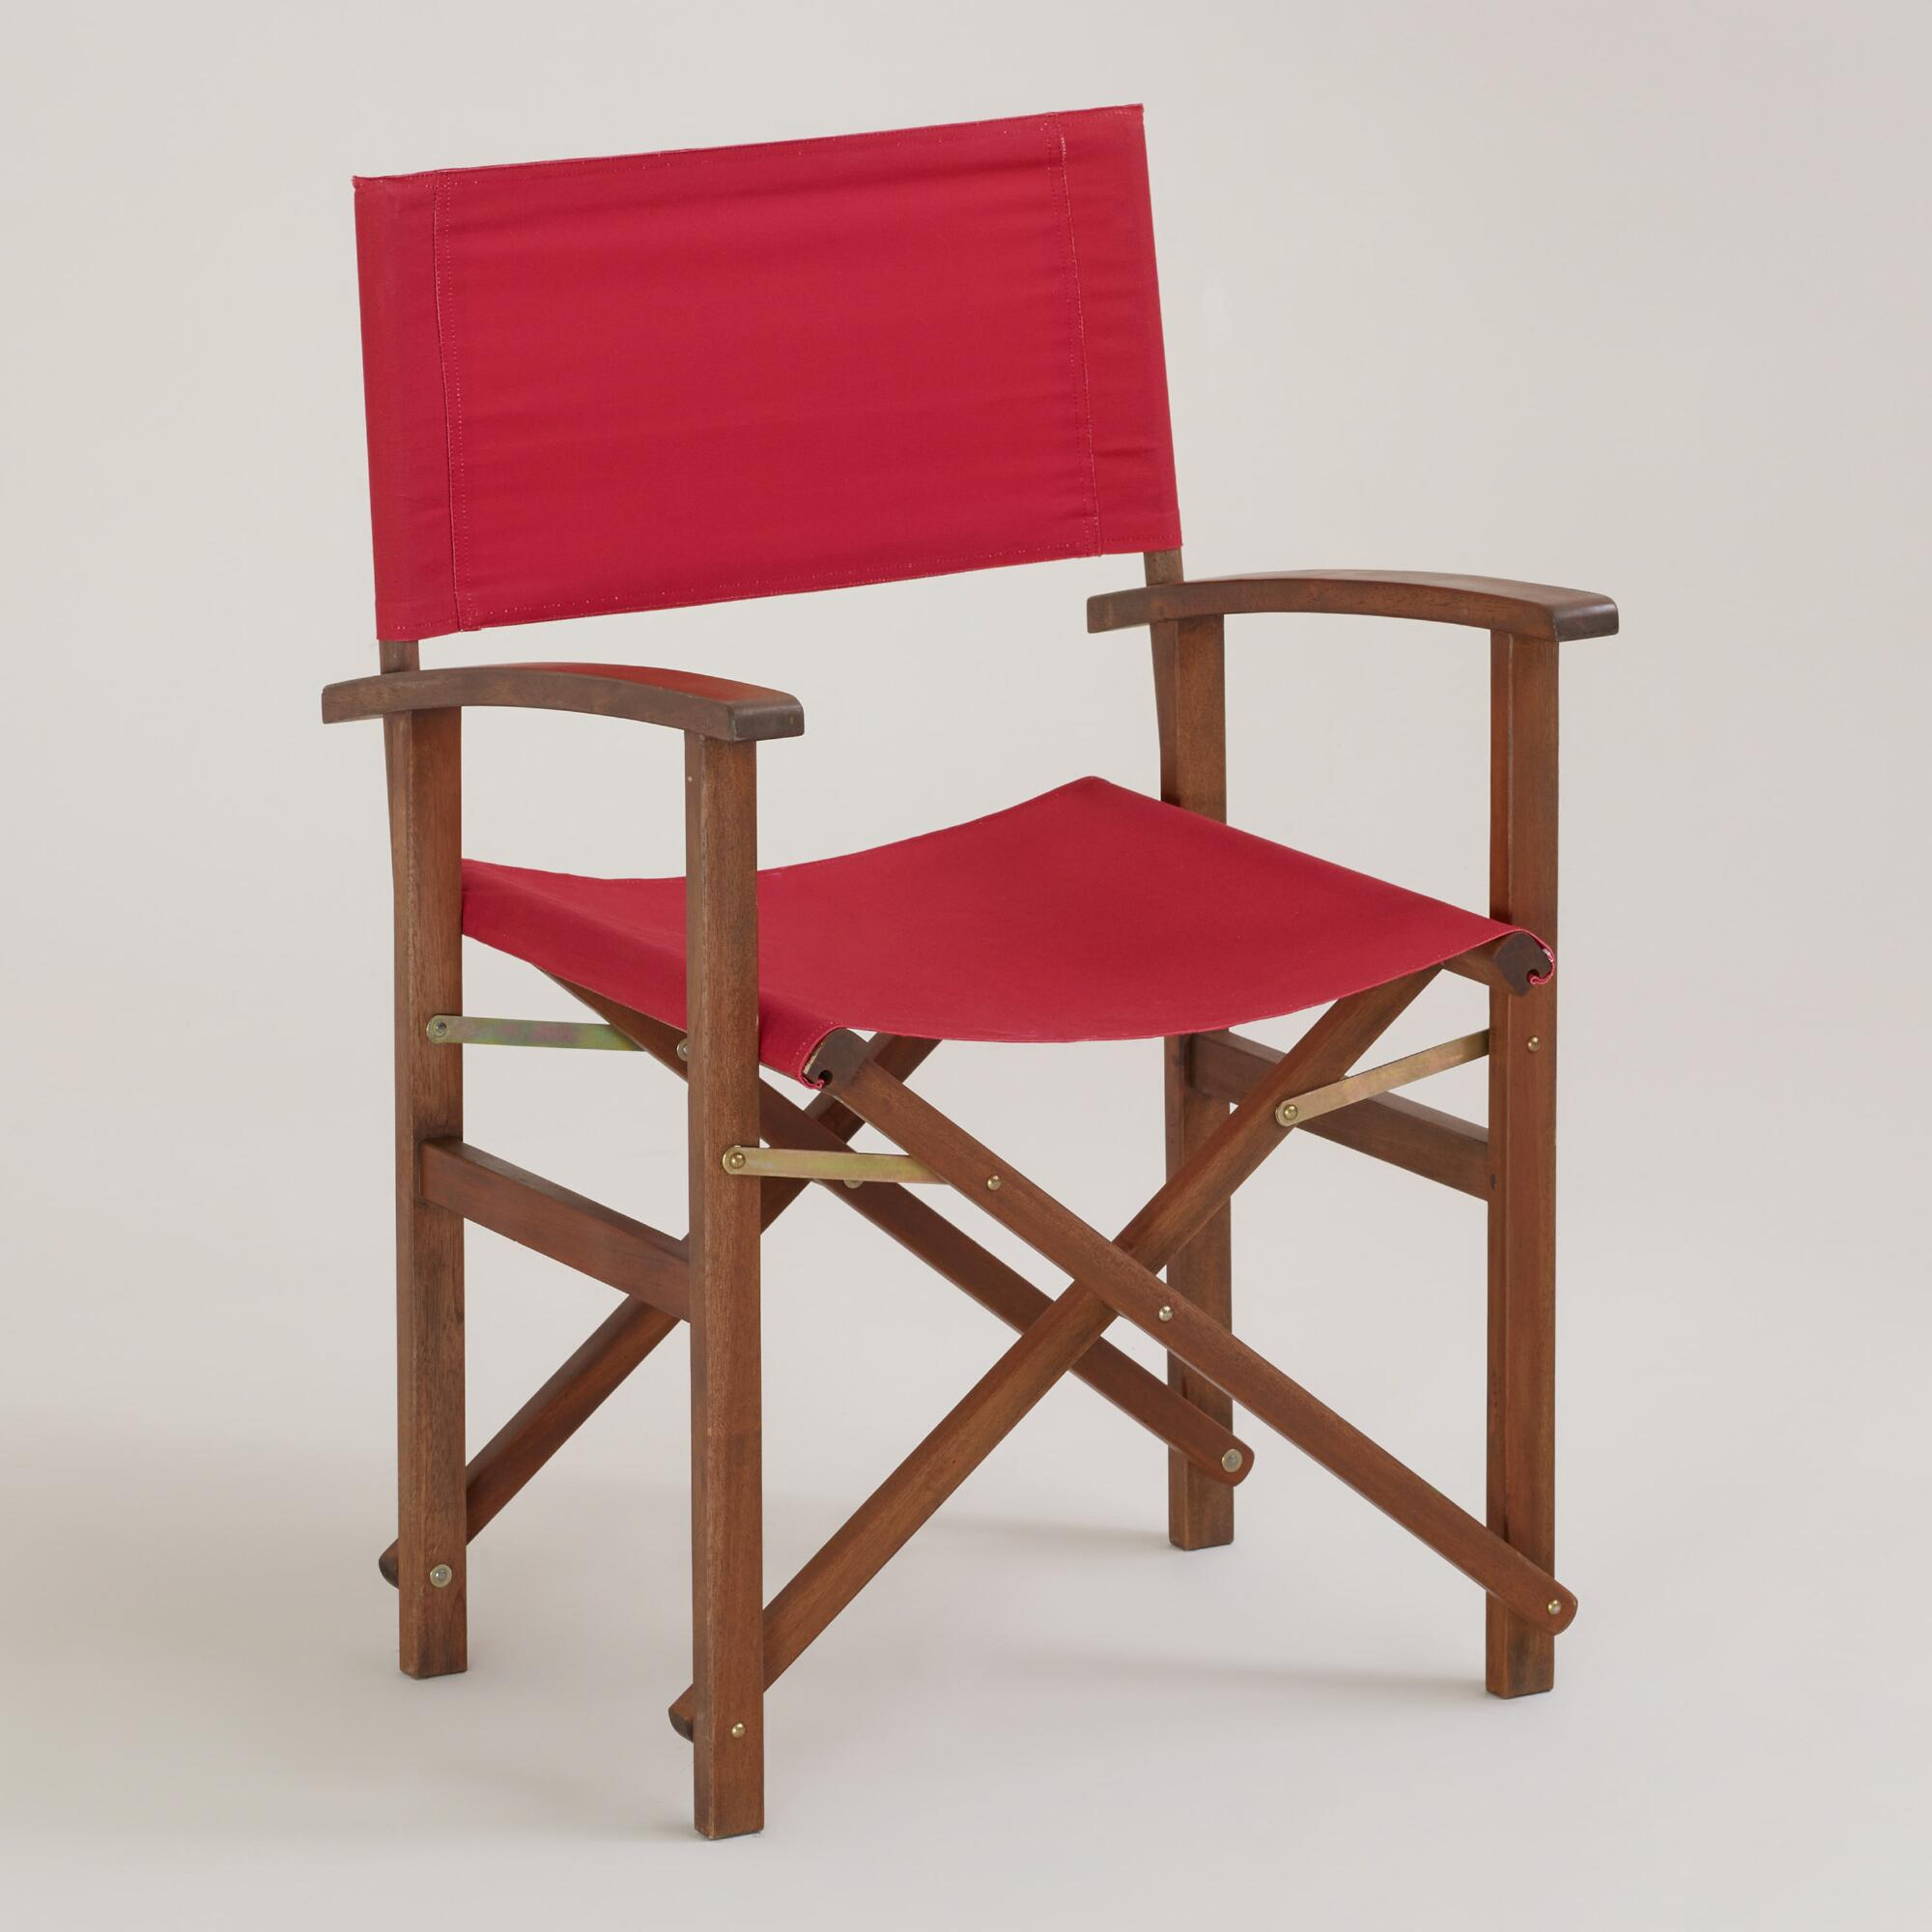 World Market Red Leather Chair: Formula One Red Bali Club Chair Canvas